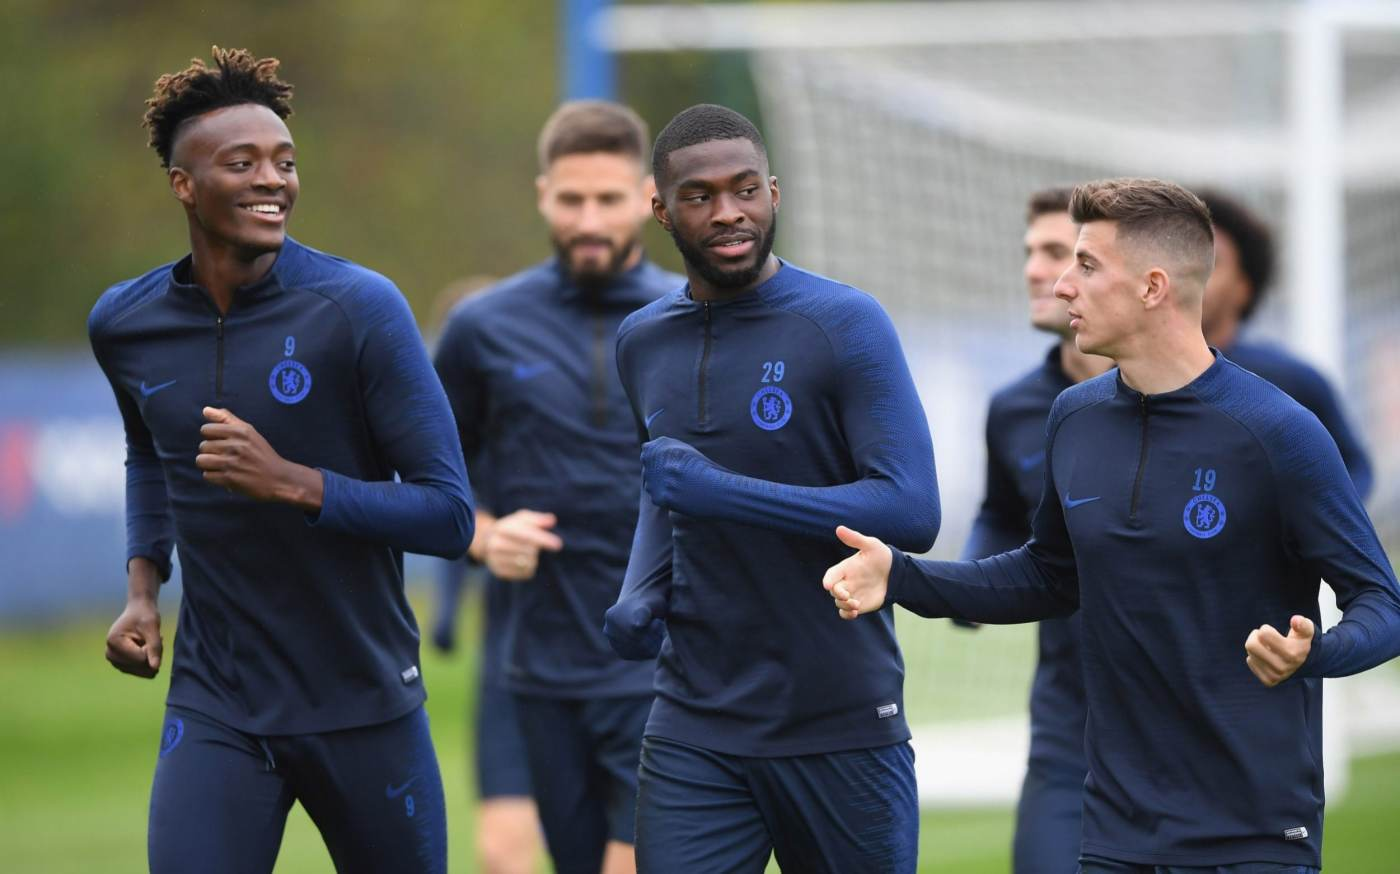 Chelsea academy graduates Tammy Abraham, Fikayo Tomori and Mason Mount have all established themselves in the first team this season